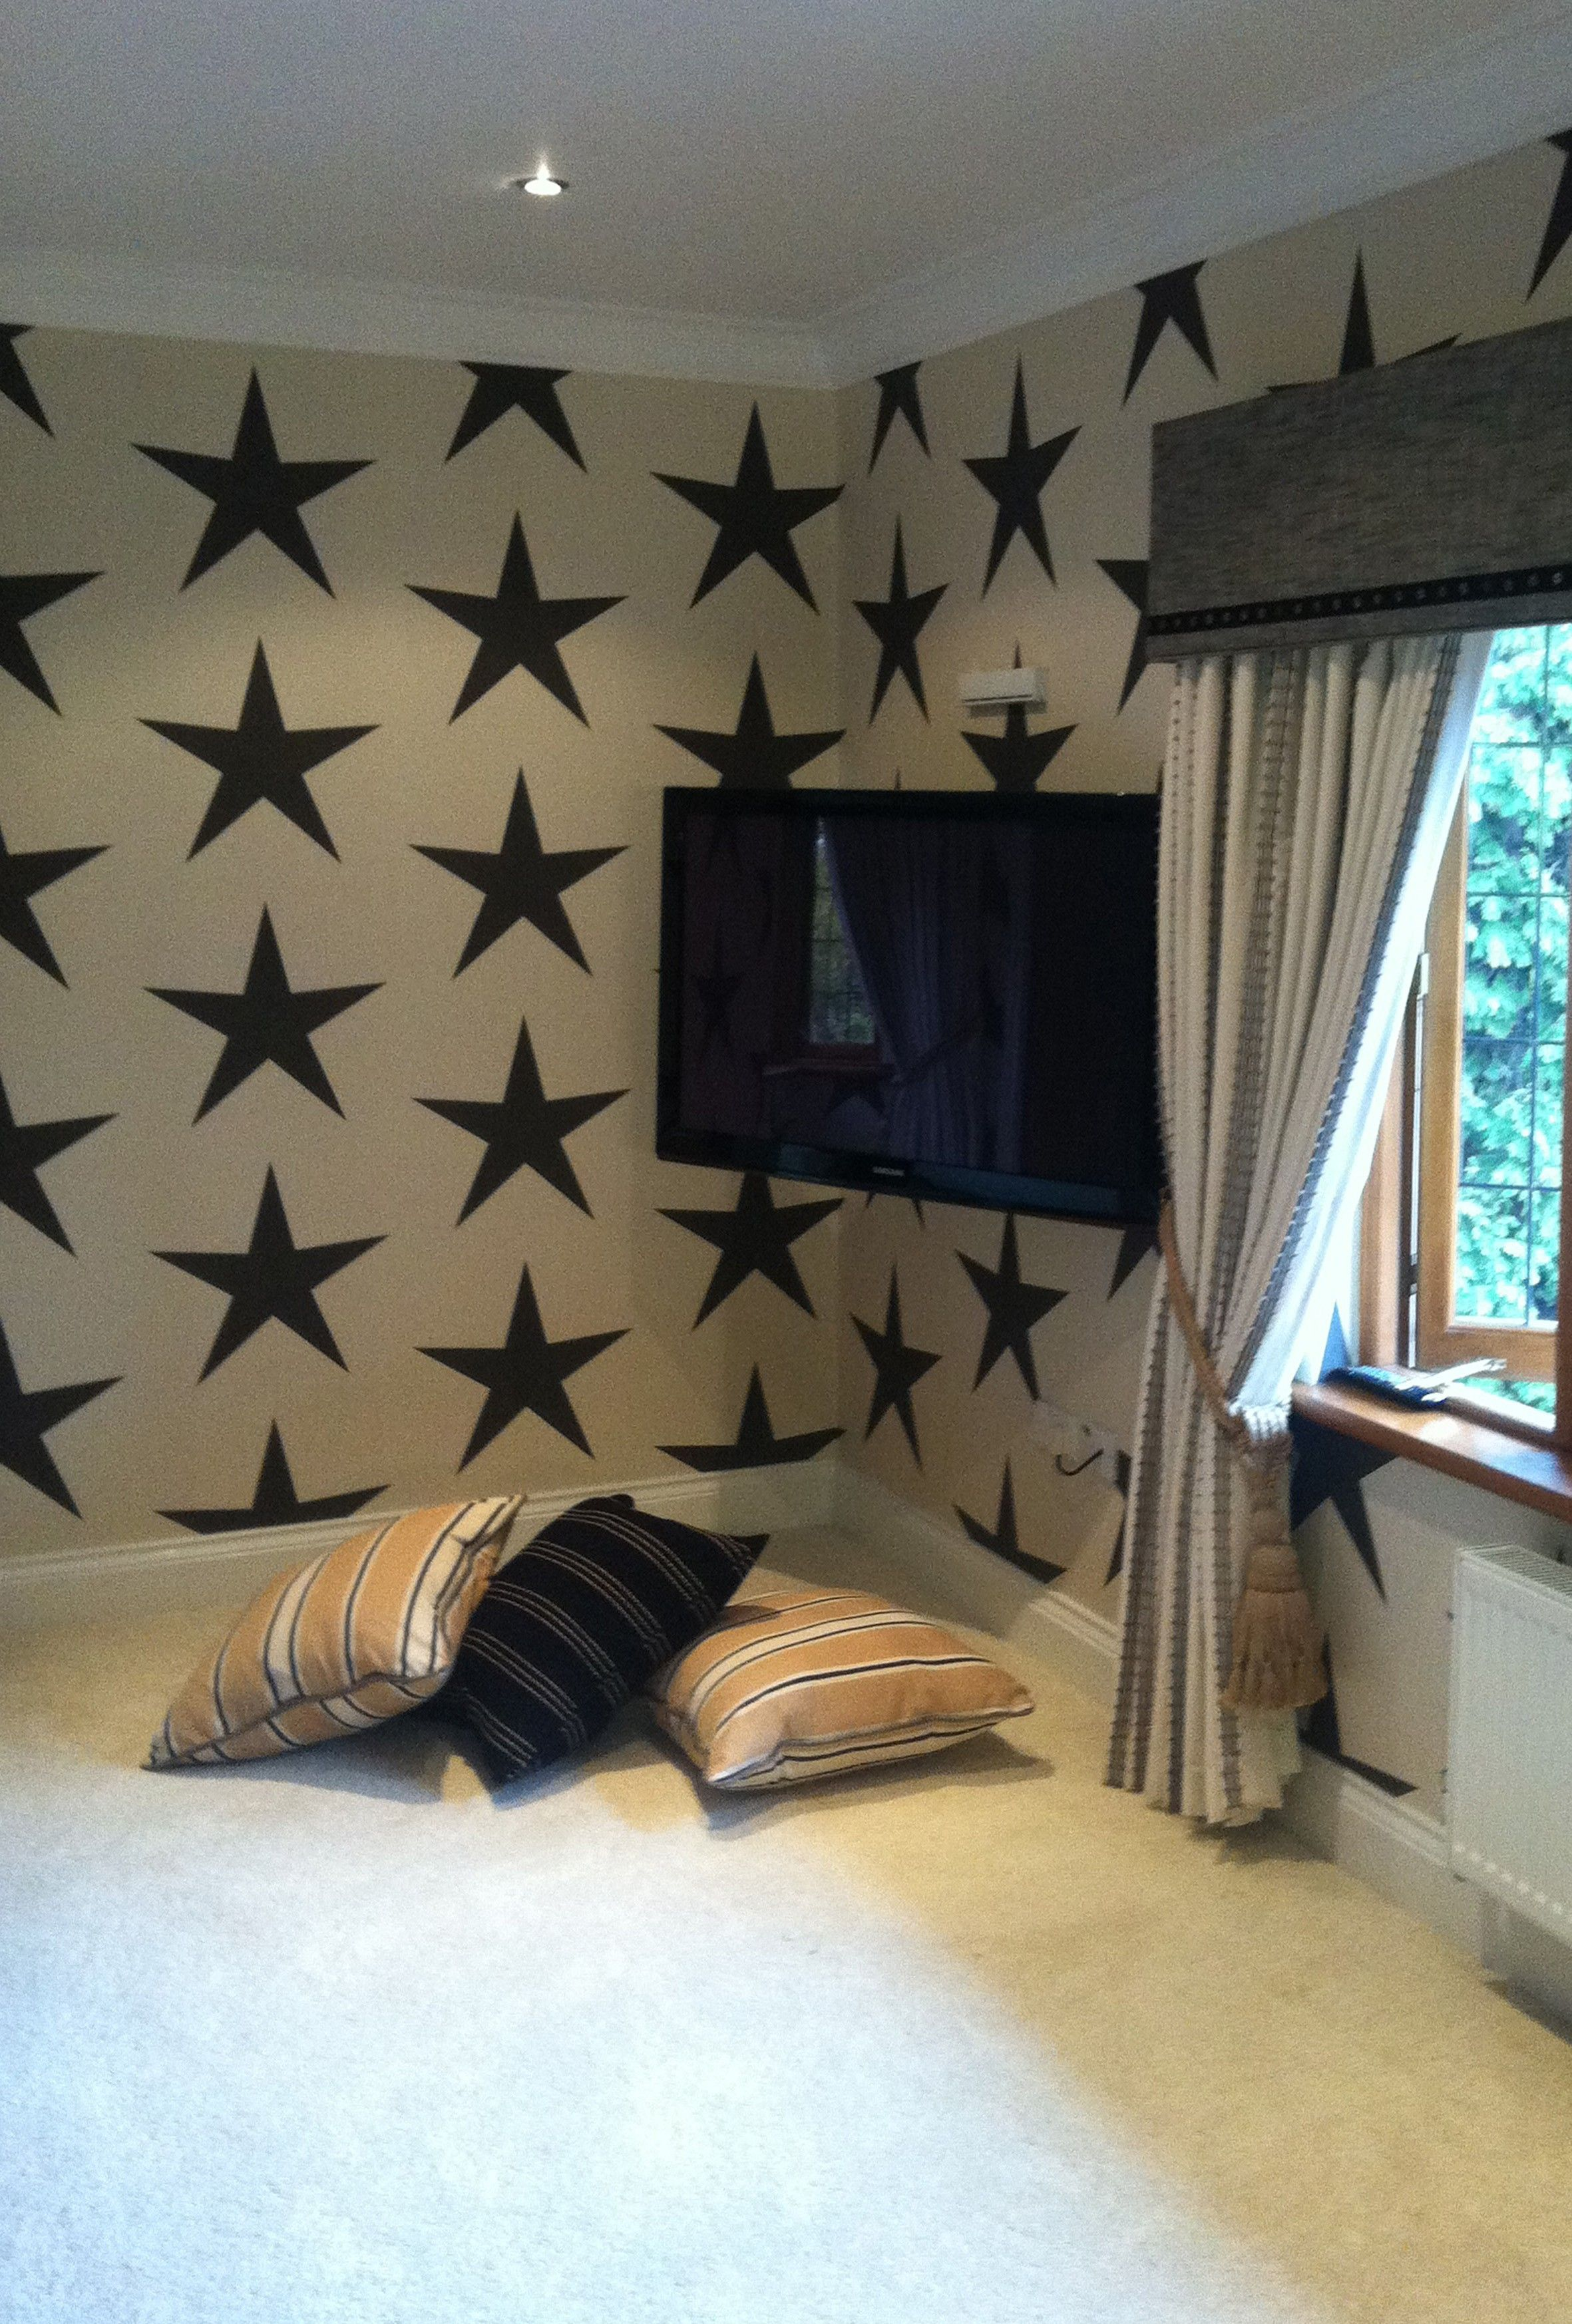 Star Wallpaper So Great For A Boy S Room